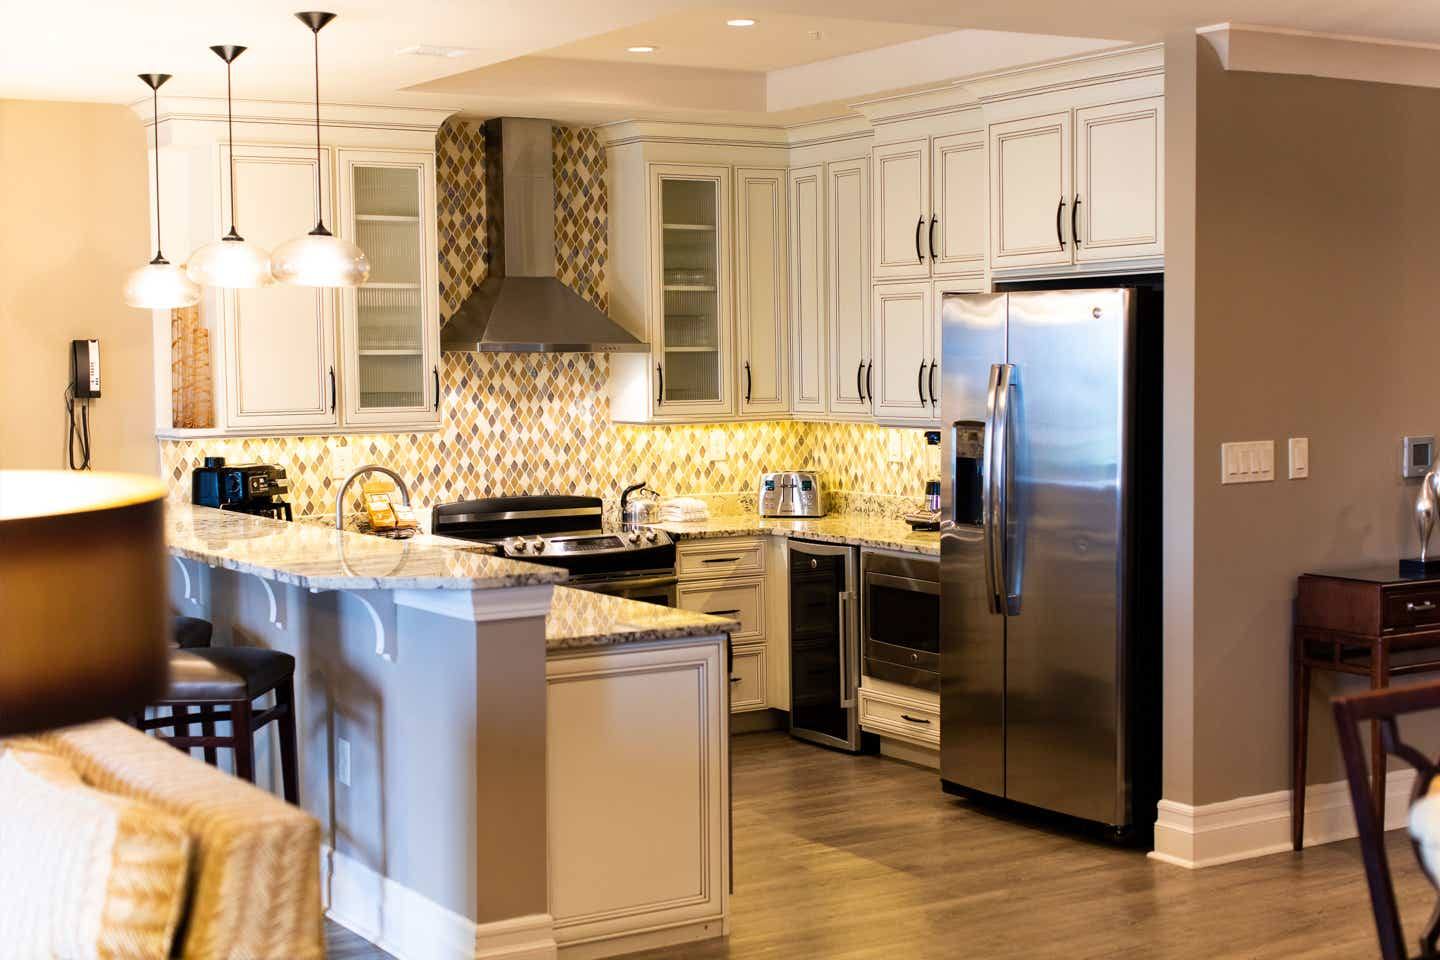 An interior shot of our Signature Villa Kitchen at our South Beach Resort.